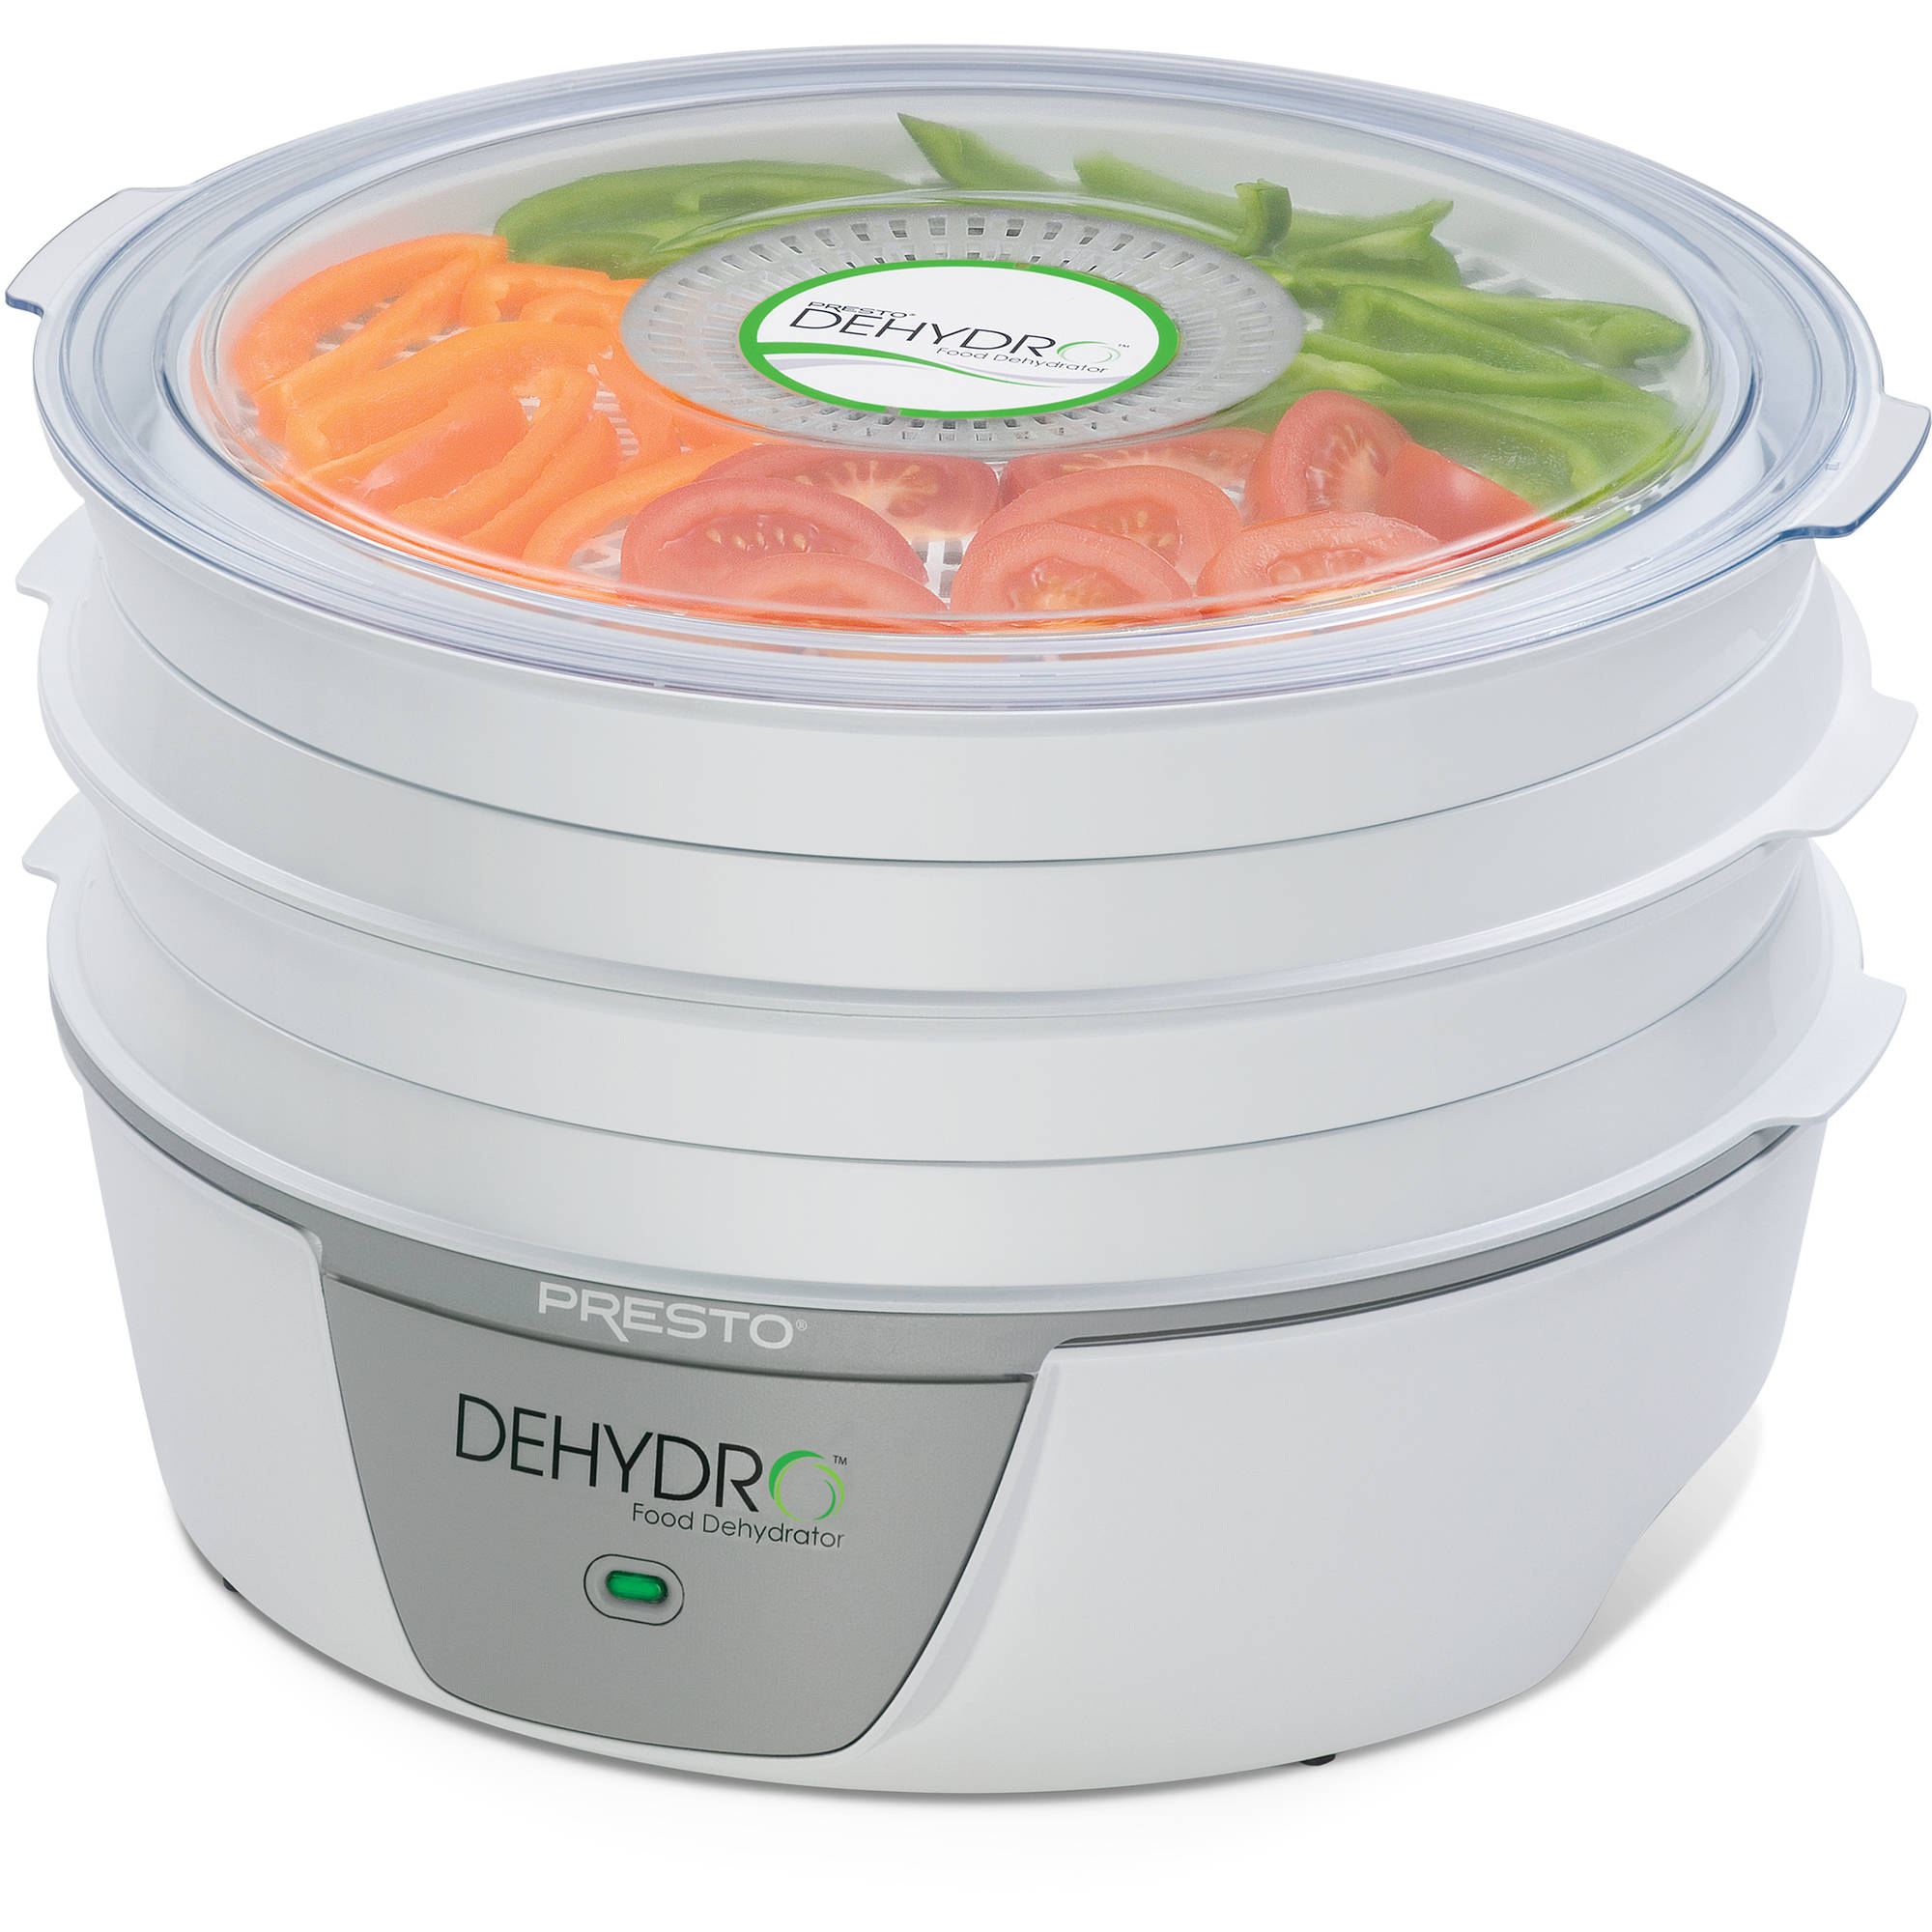 Presto Dehydro™ Electric Food Dehydrator 06300